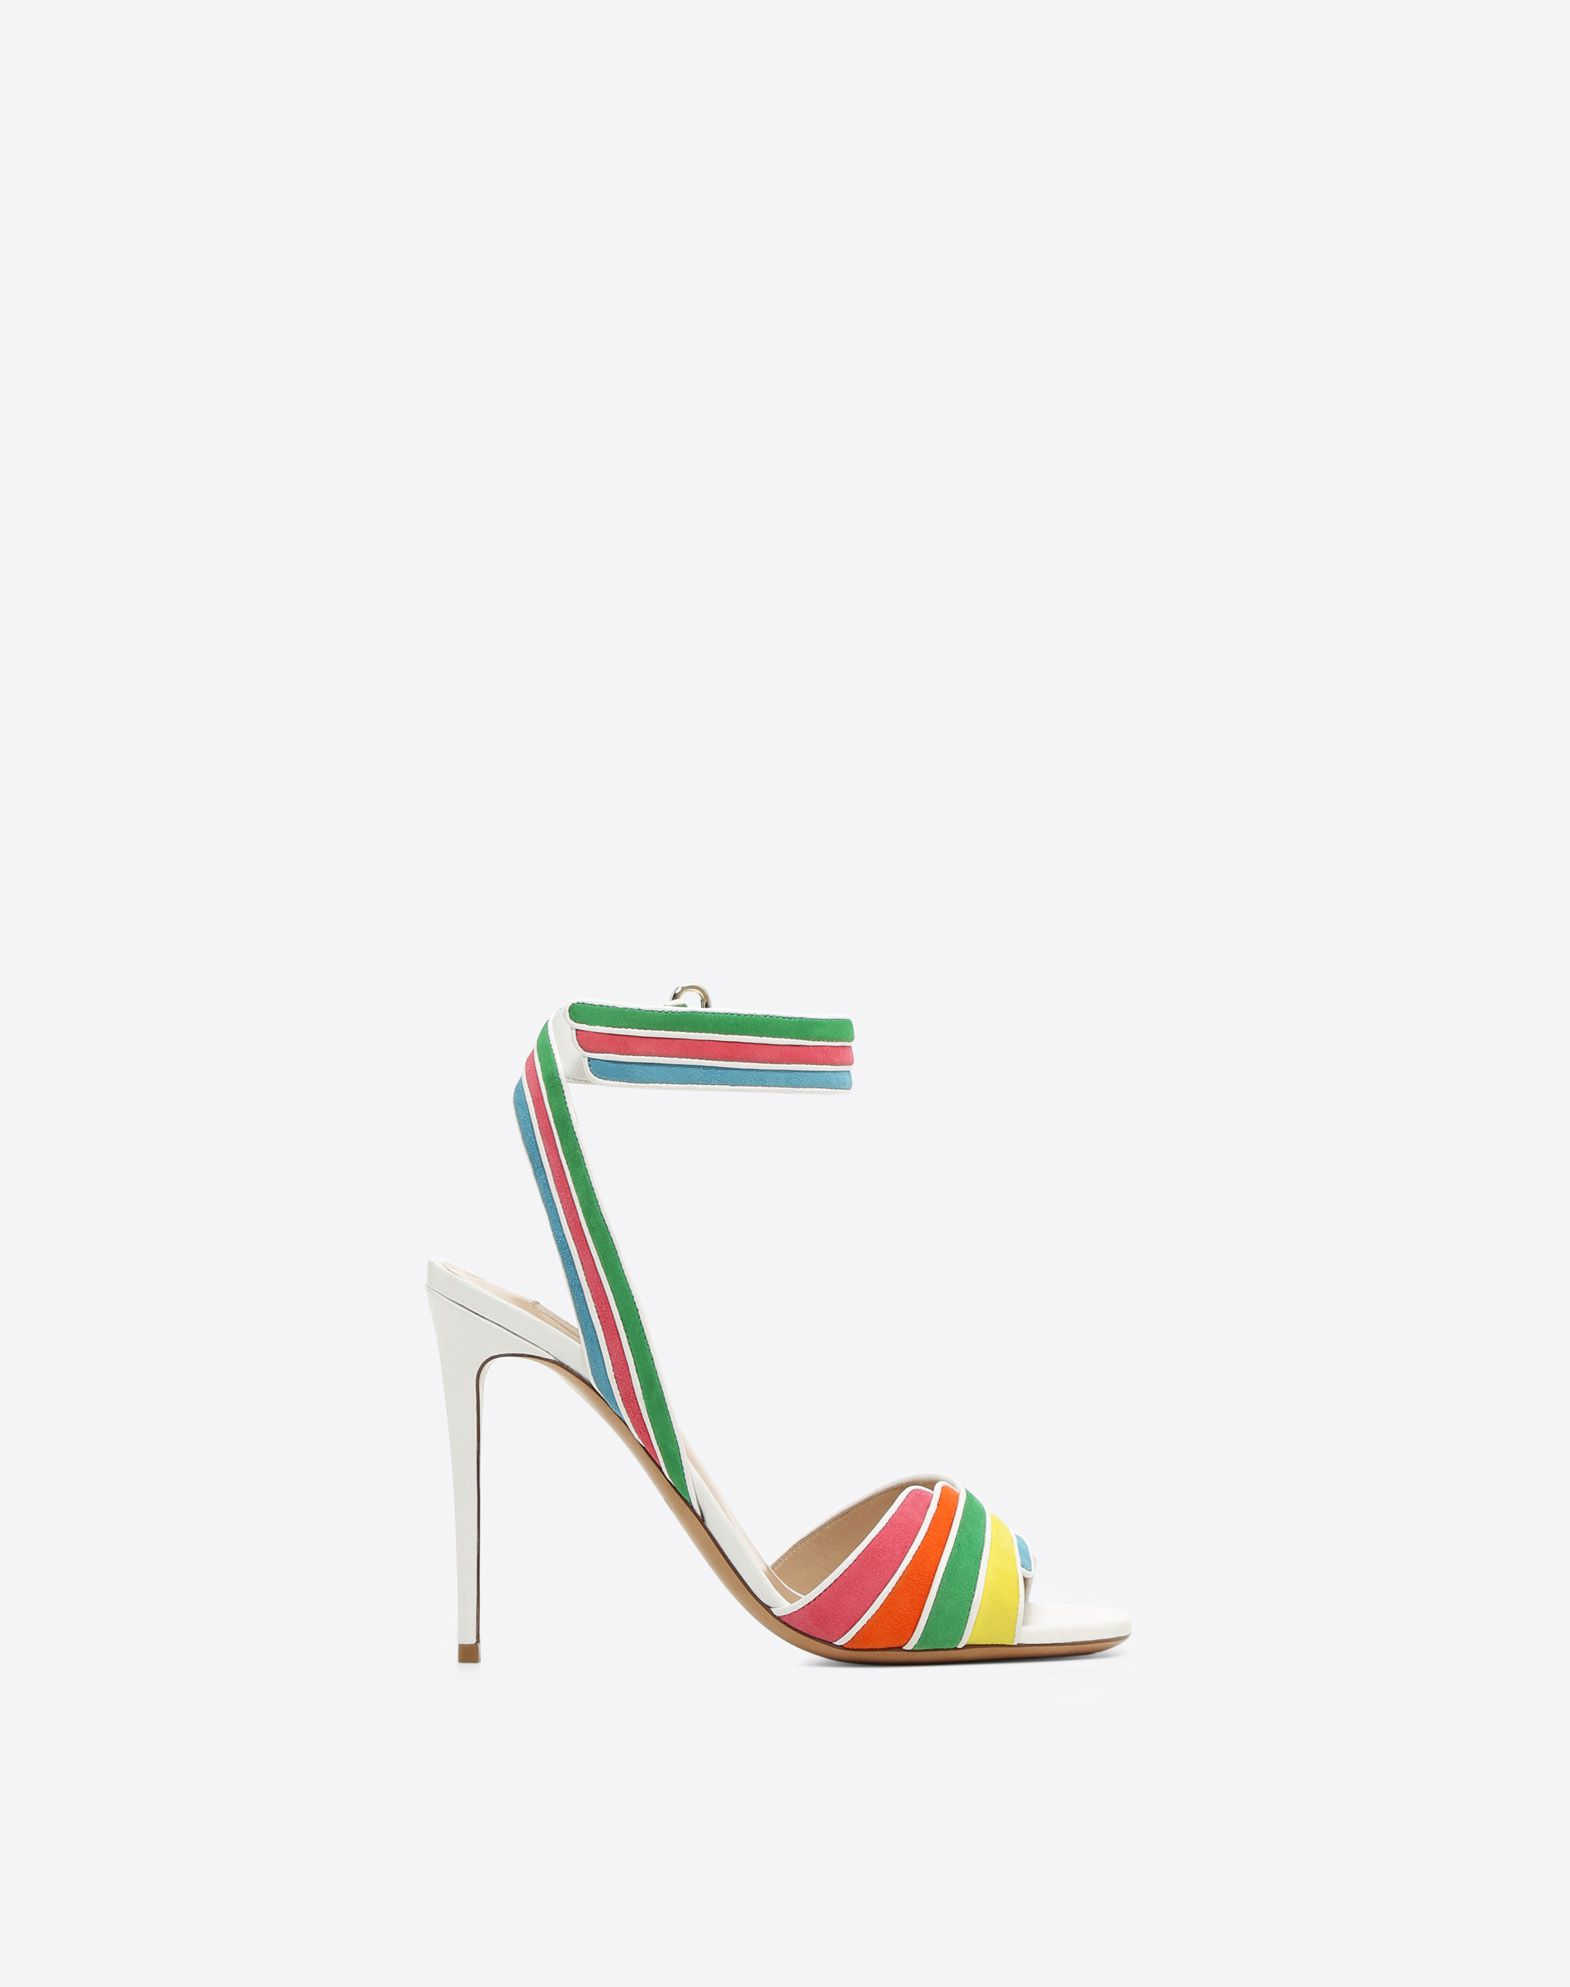 VALENTINO GARAVANI Multi-color suede 105mm Sandal HIGH HEEL SANDALS D f